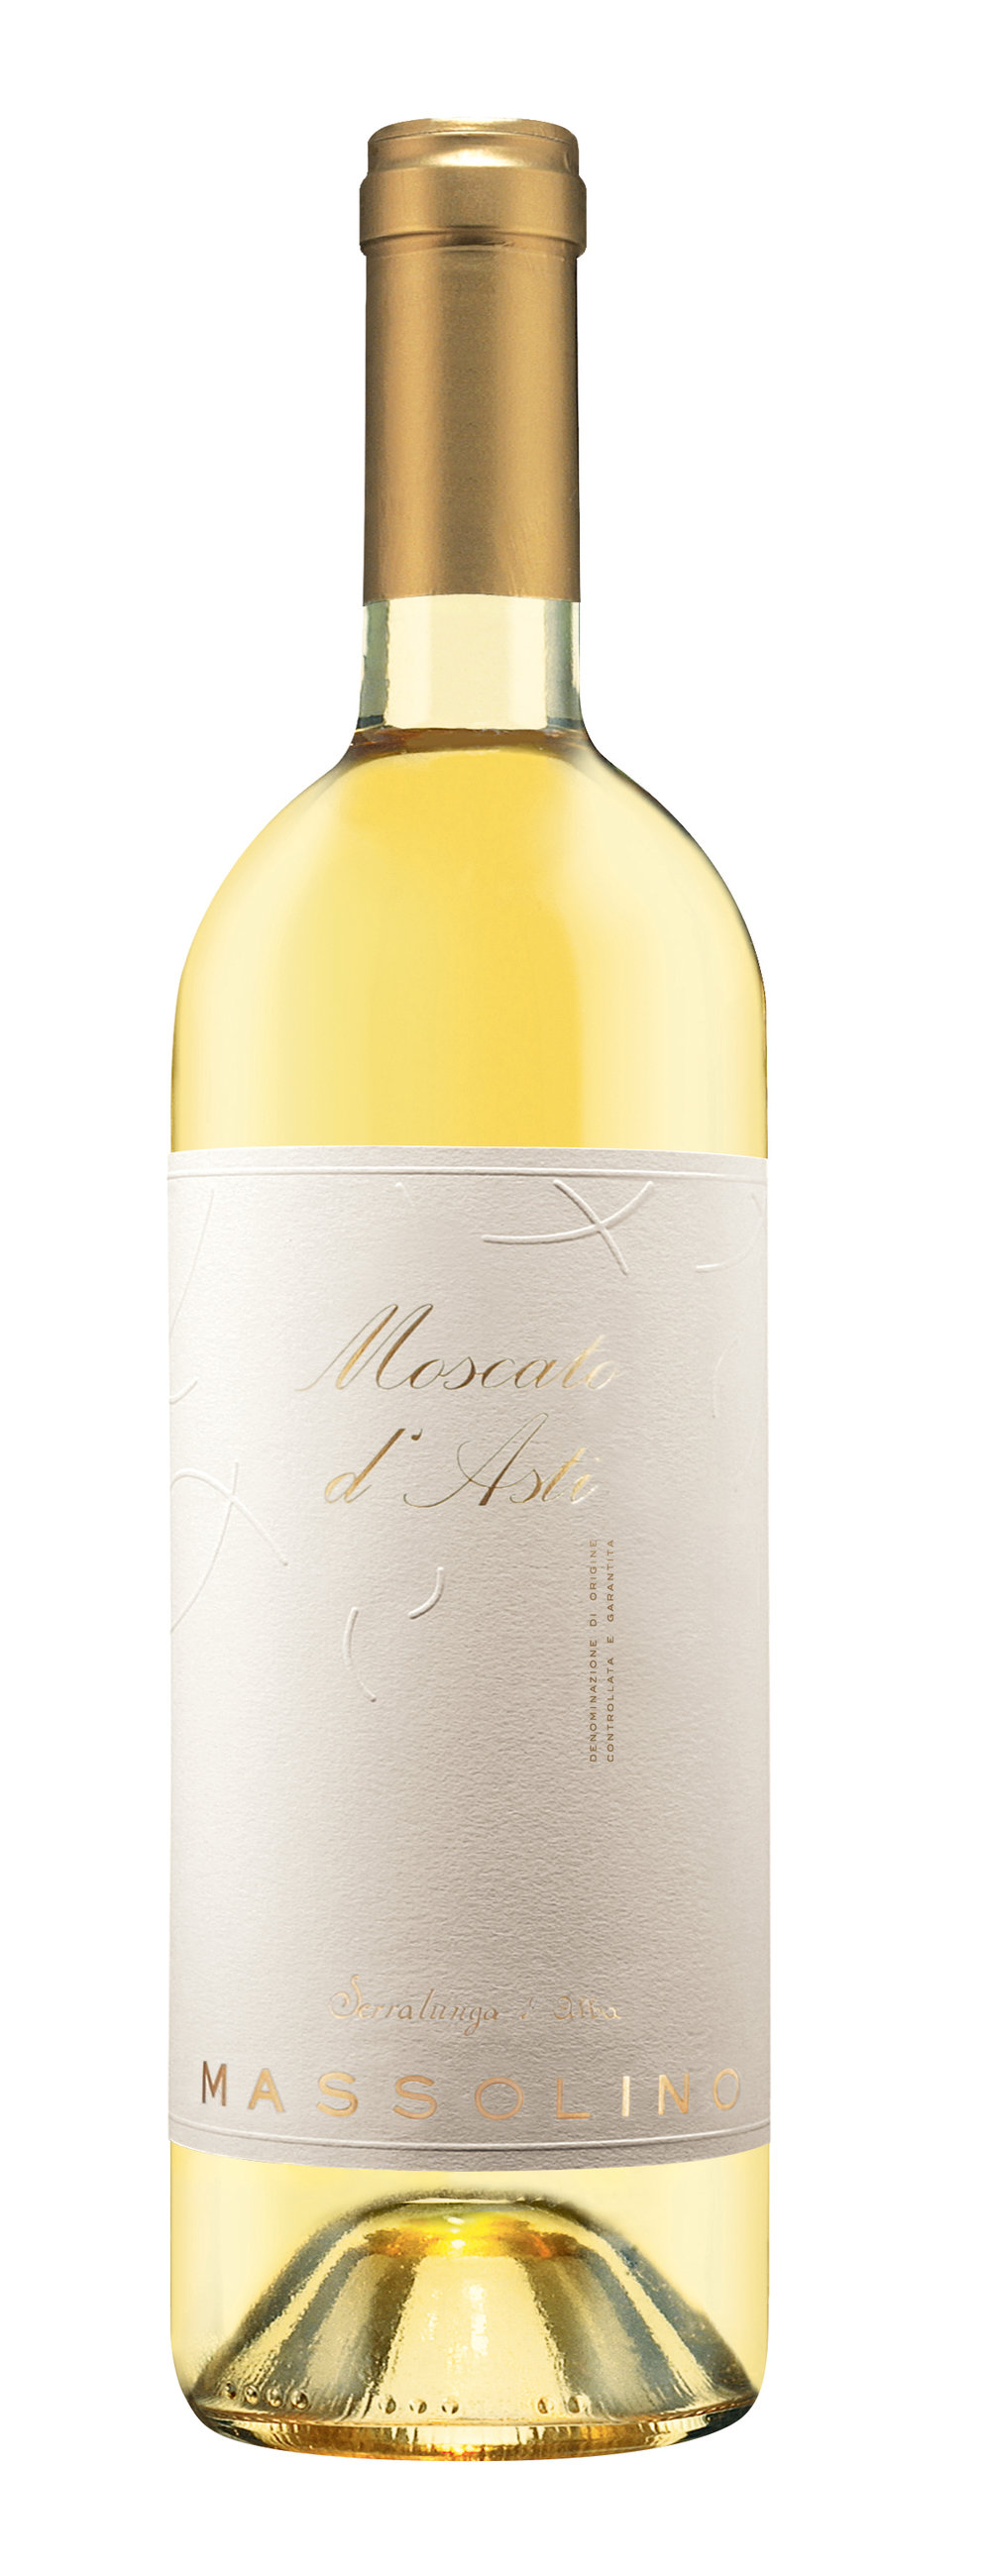 Massolino Moscato d'Asti Bottle.jpg